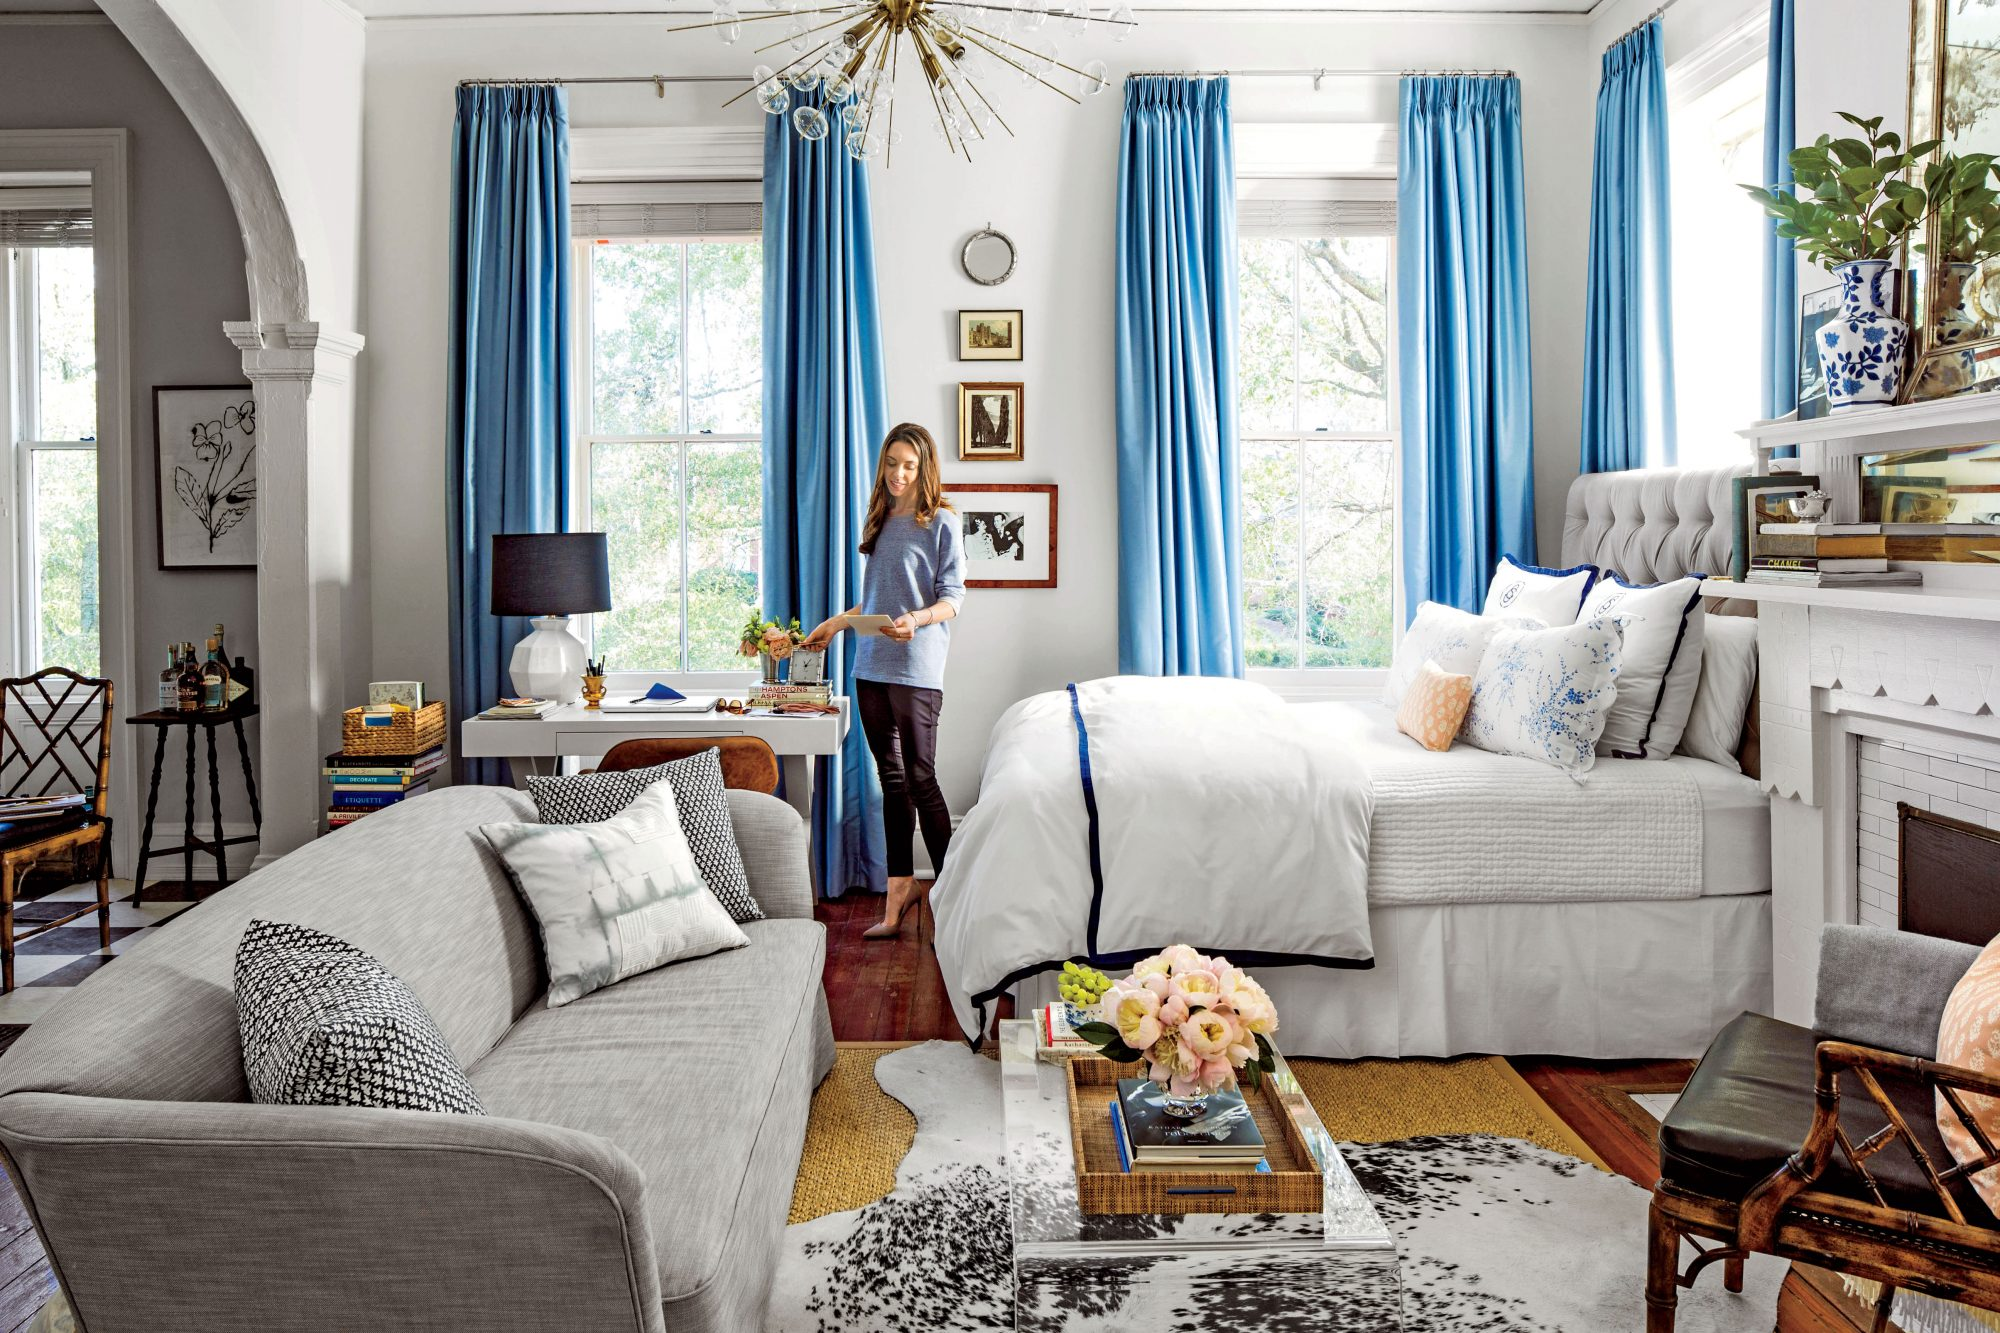 Wilmington Blue White and Gray Studio